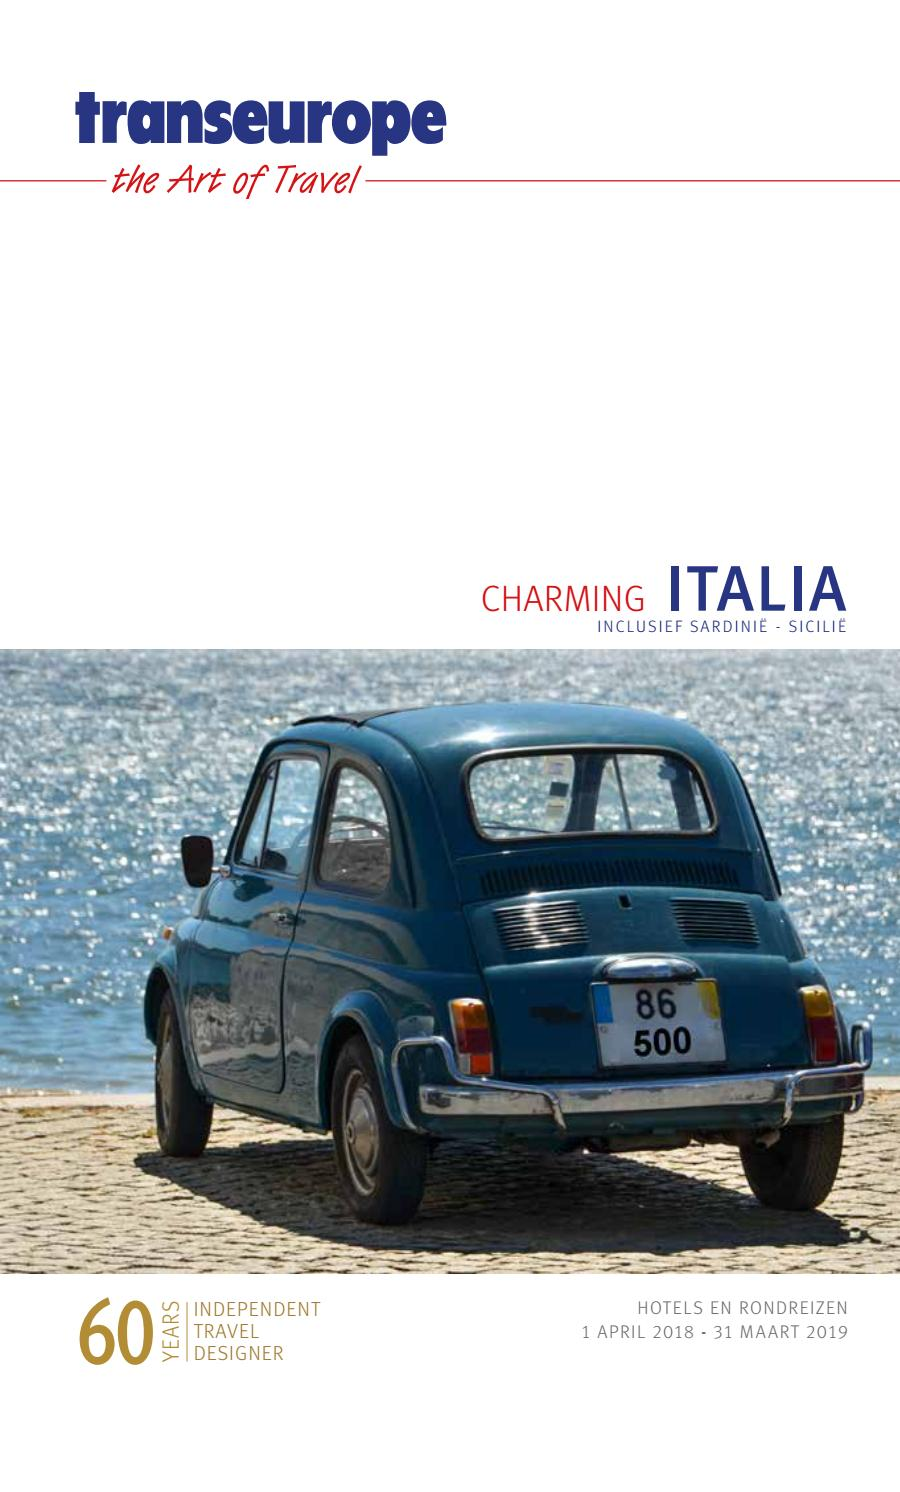 Auto Huren Palermo Luchthaven Charming Italia 1819 Nl By W247 Be Issuu